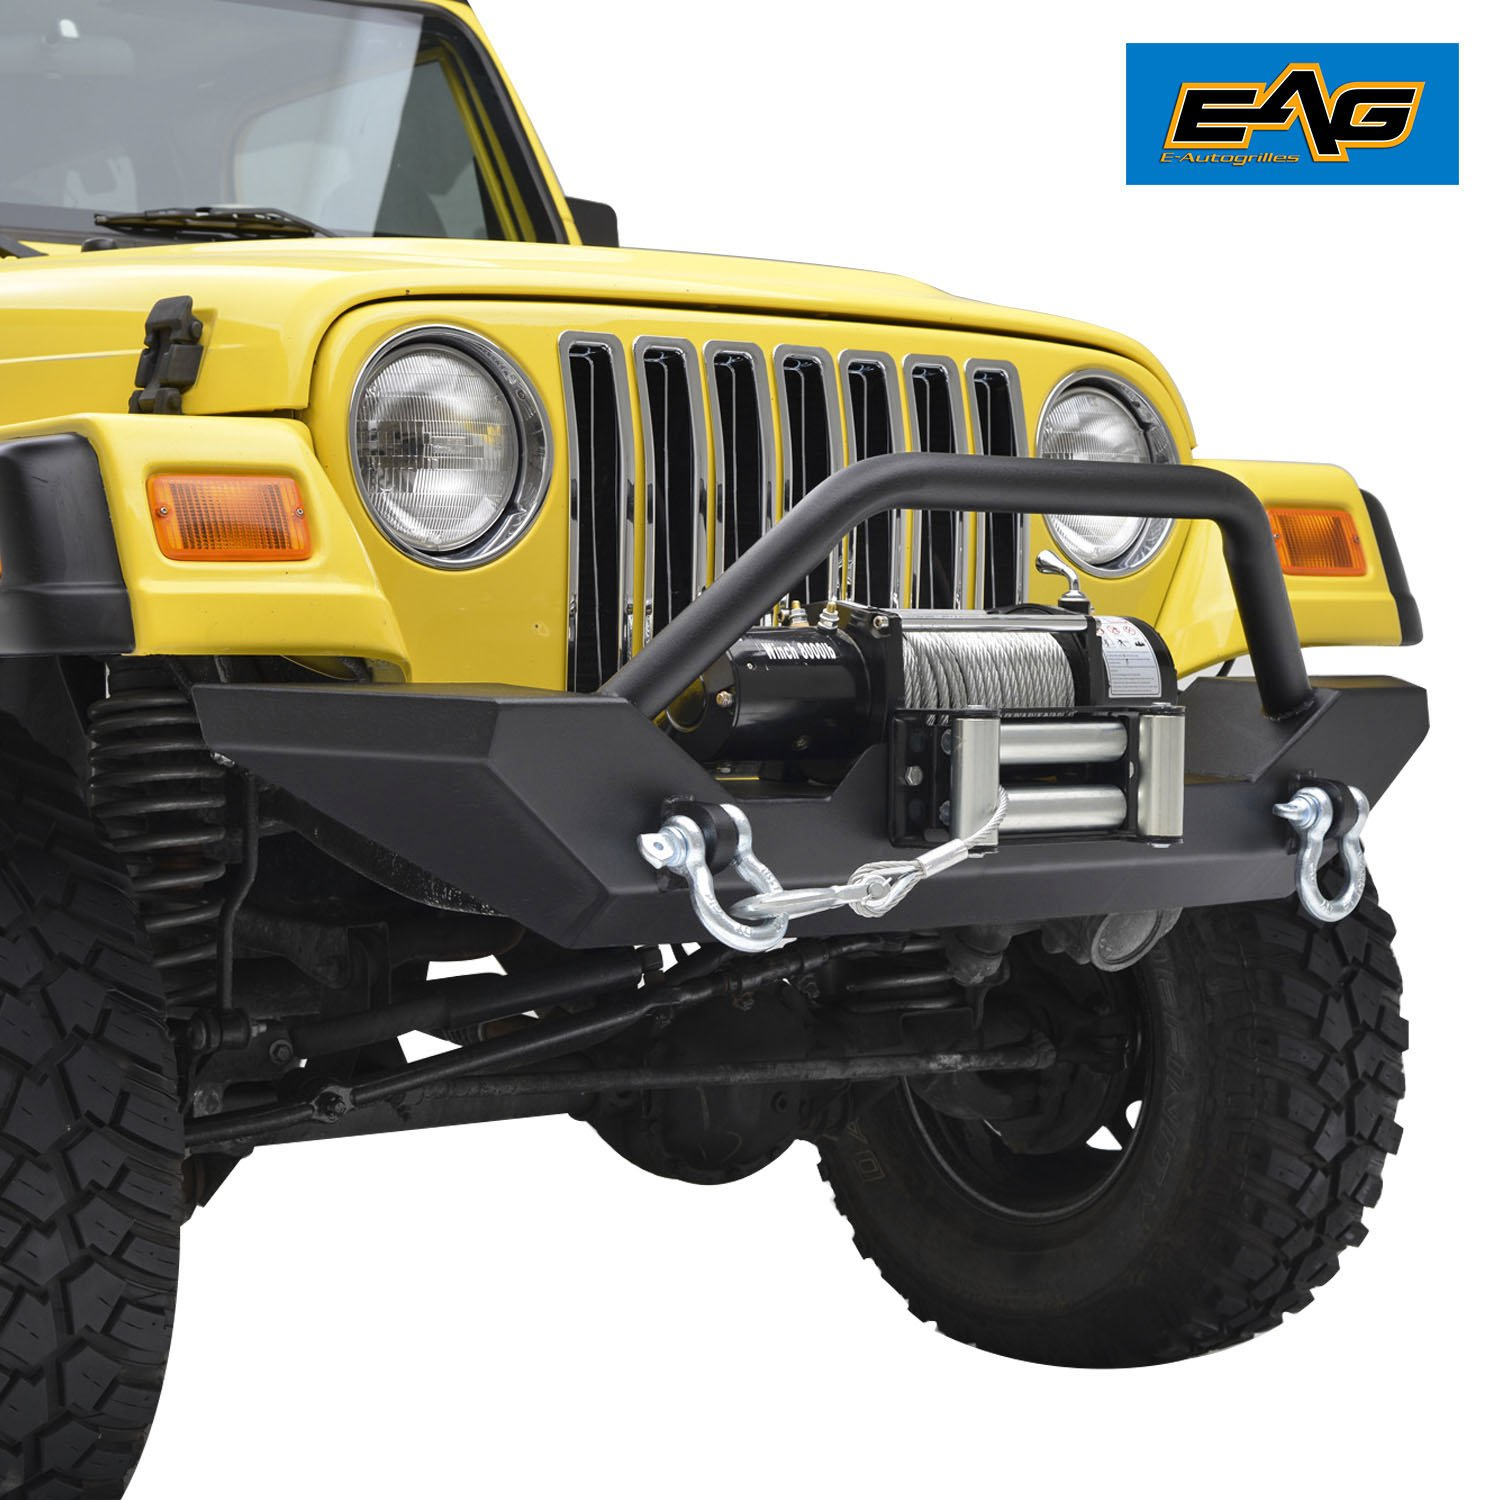 EAG 97-06 Jeep Wrangler TJ Front Bumper with 2x D-ring & Winch Plate (51-0034) by E-Autogrilles